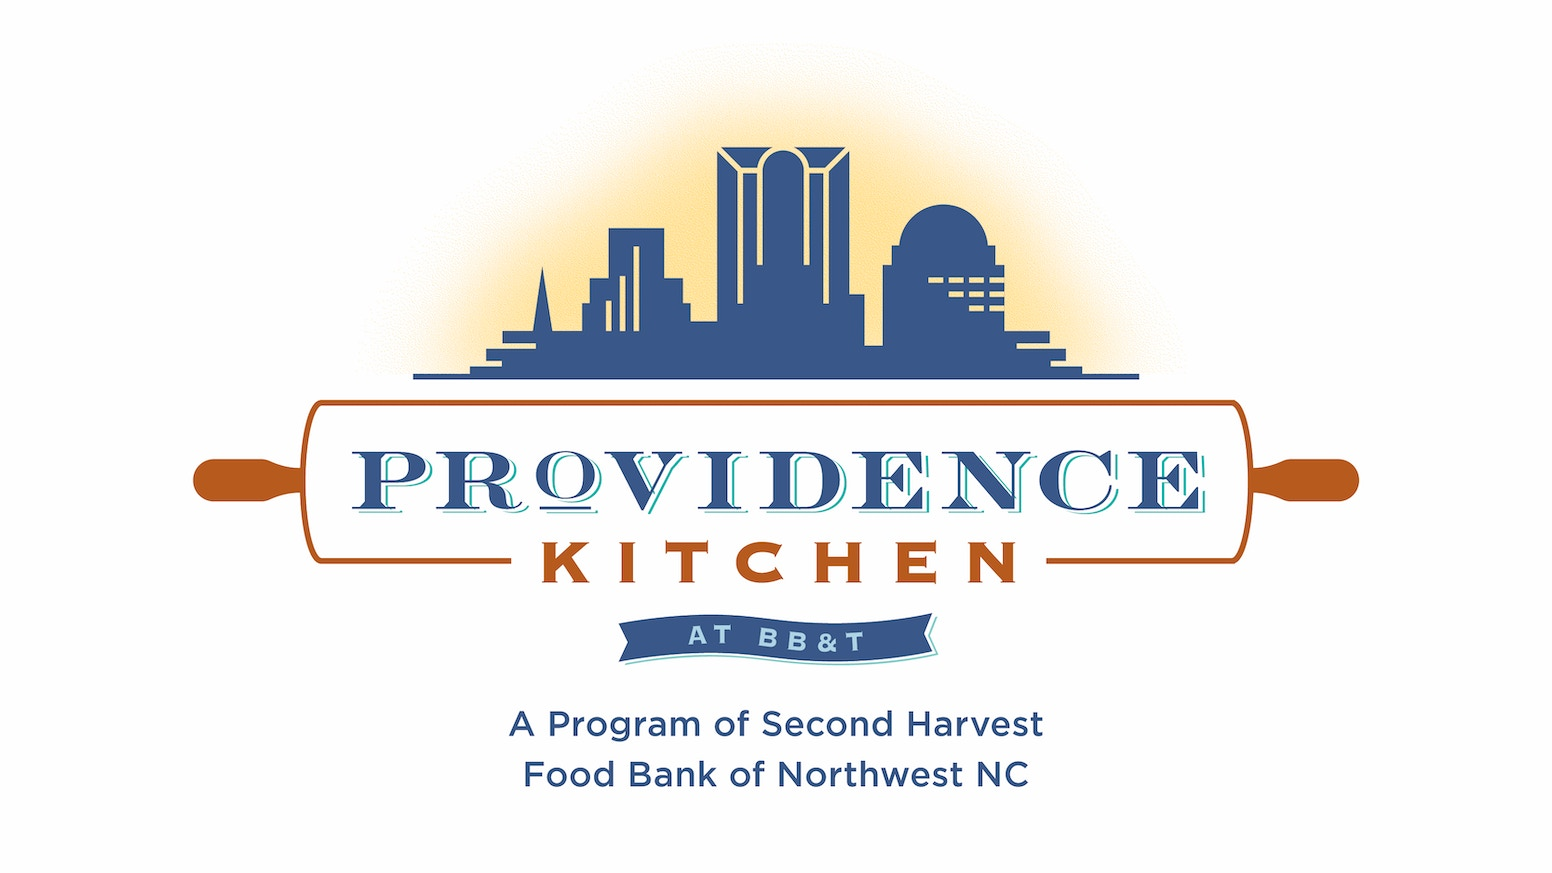 Providence Kitchen by Jeff Bacon — Kickstarter